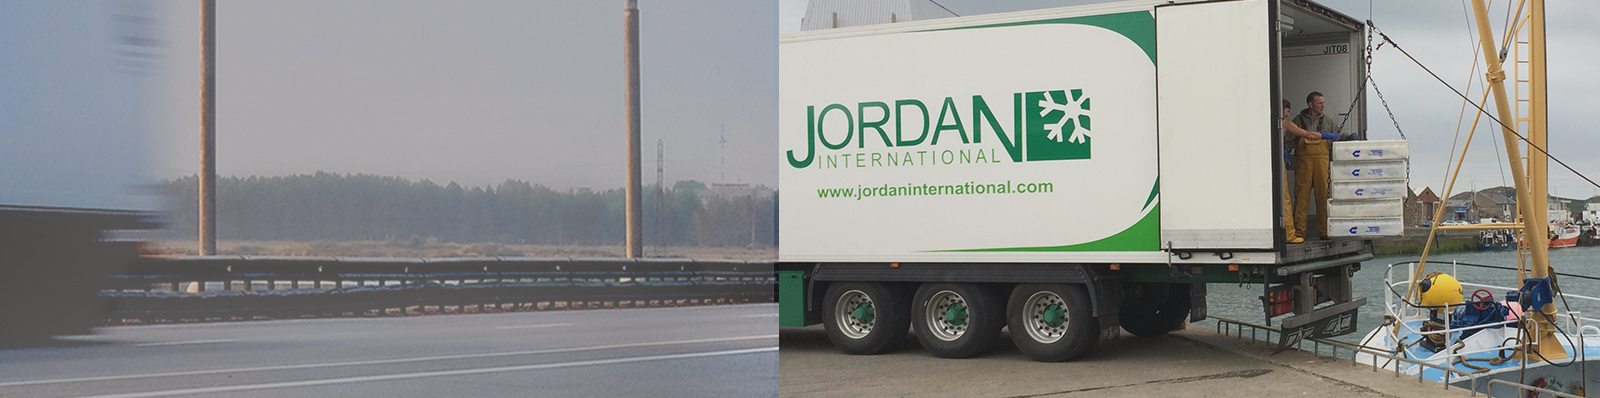 Jordan International Seafood Transportation